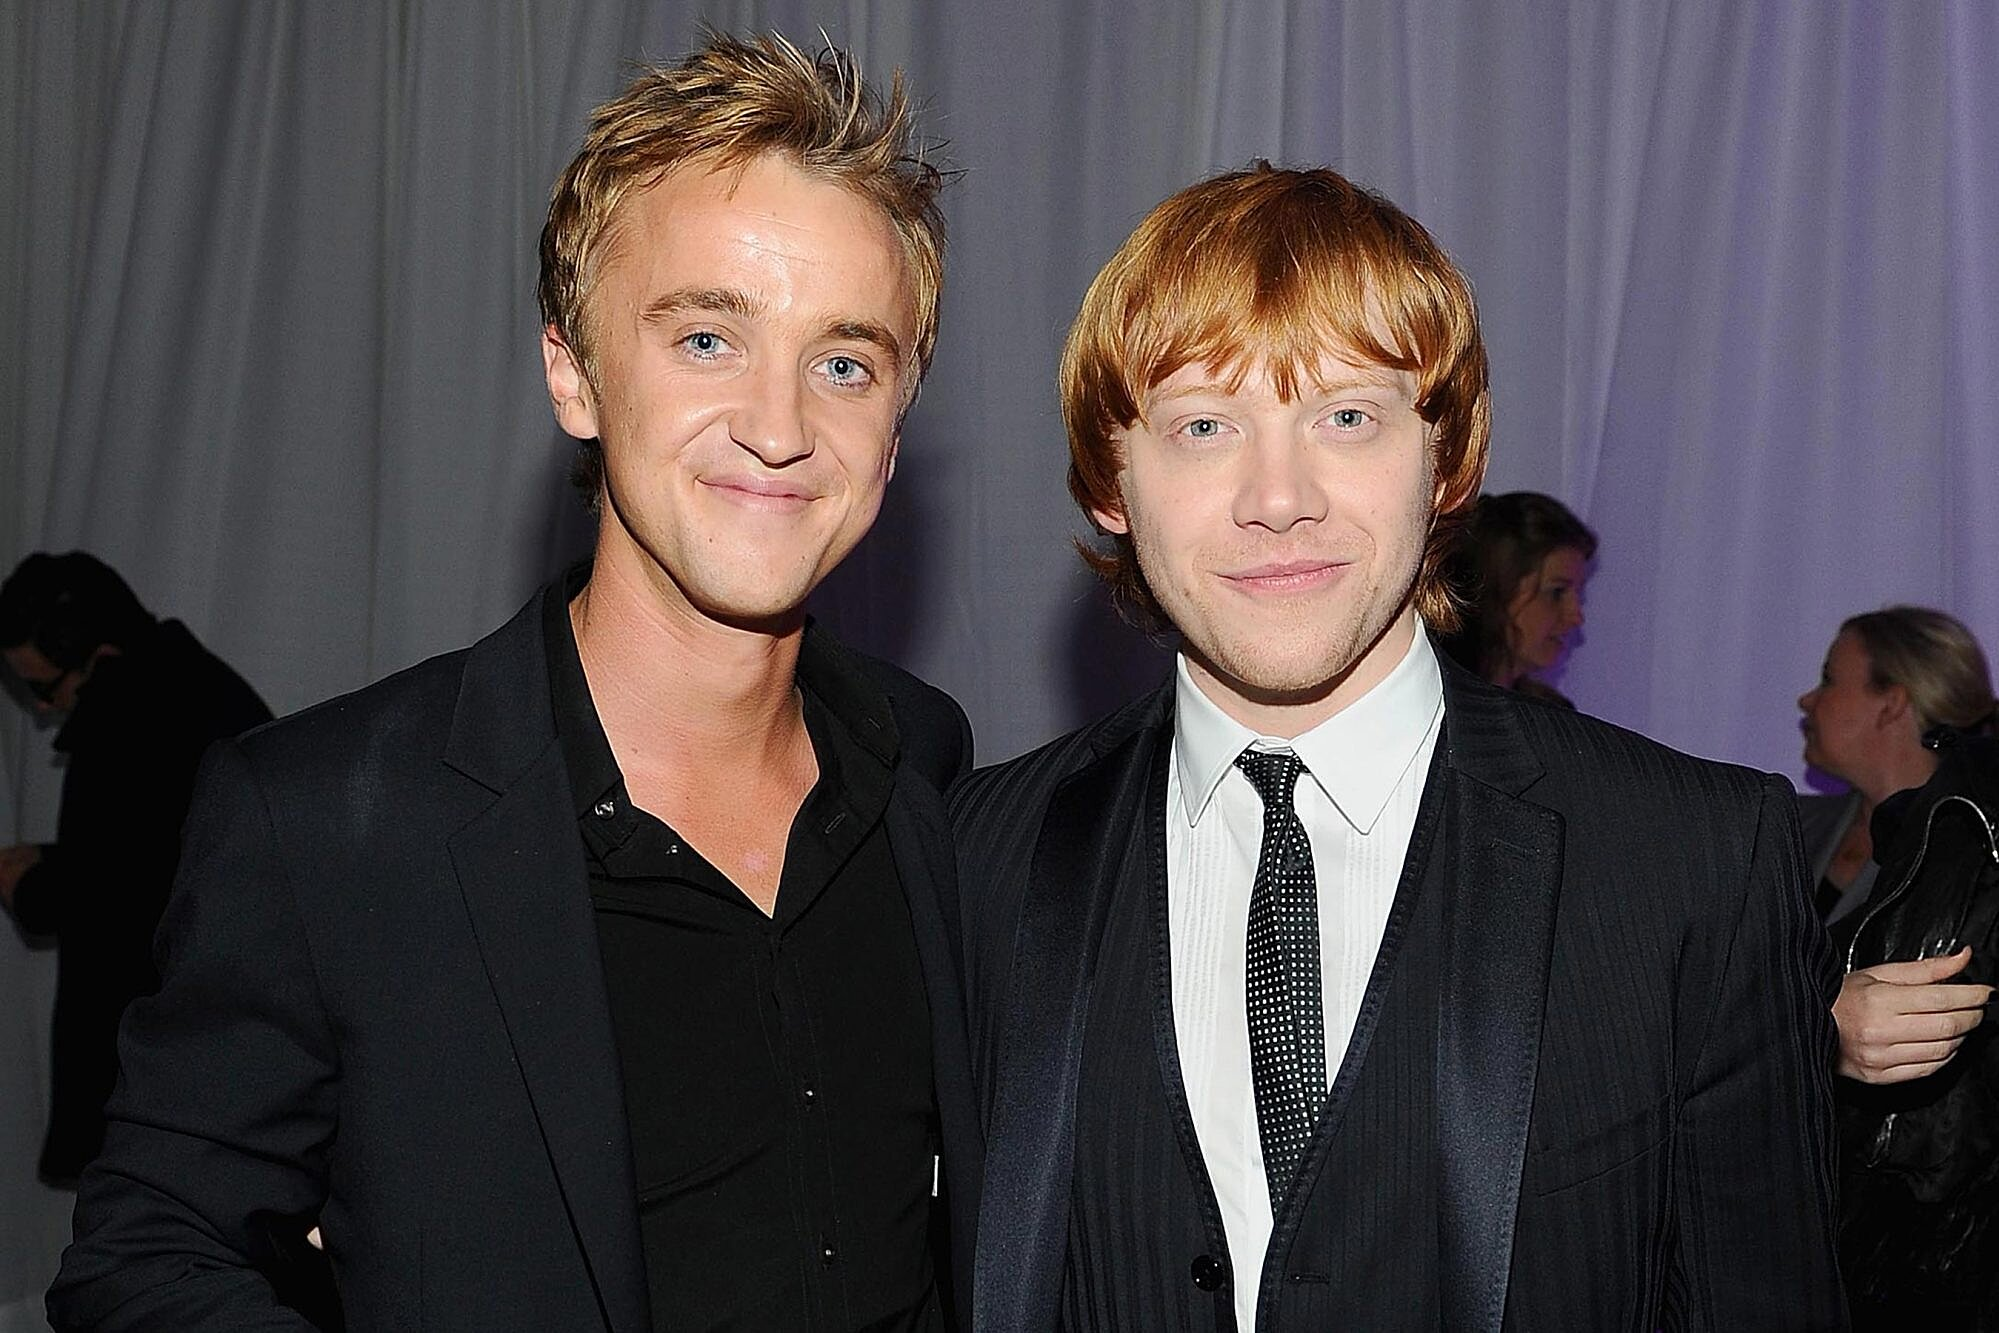 Harry Potter stars Rupert Grint, Tom Felton on returning to franchise